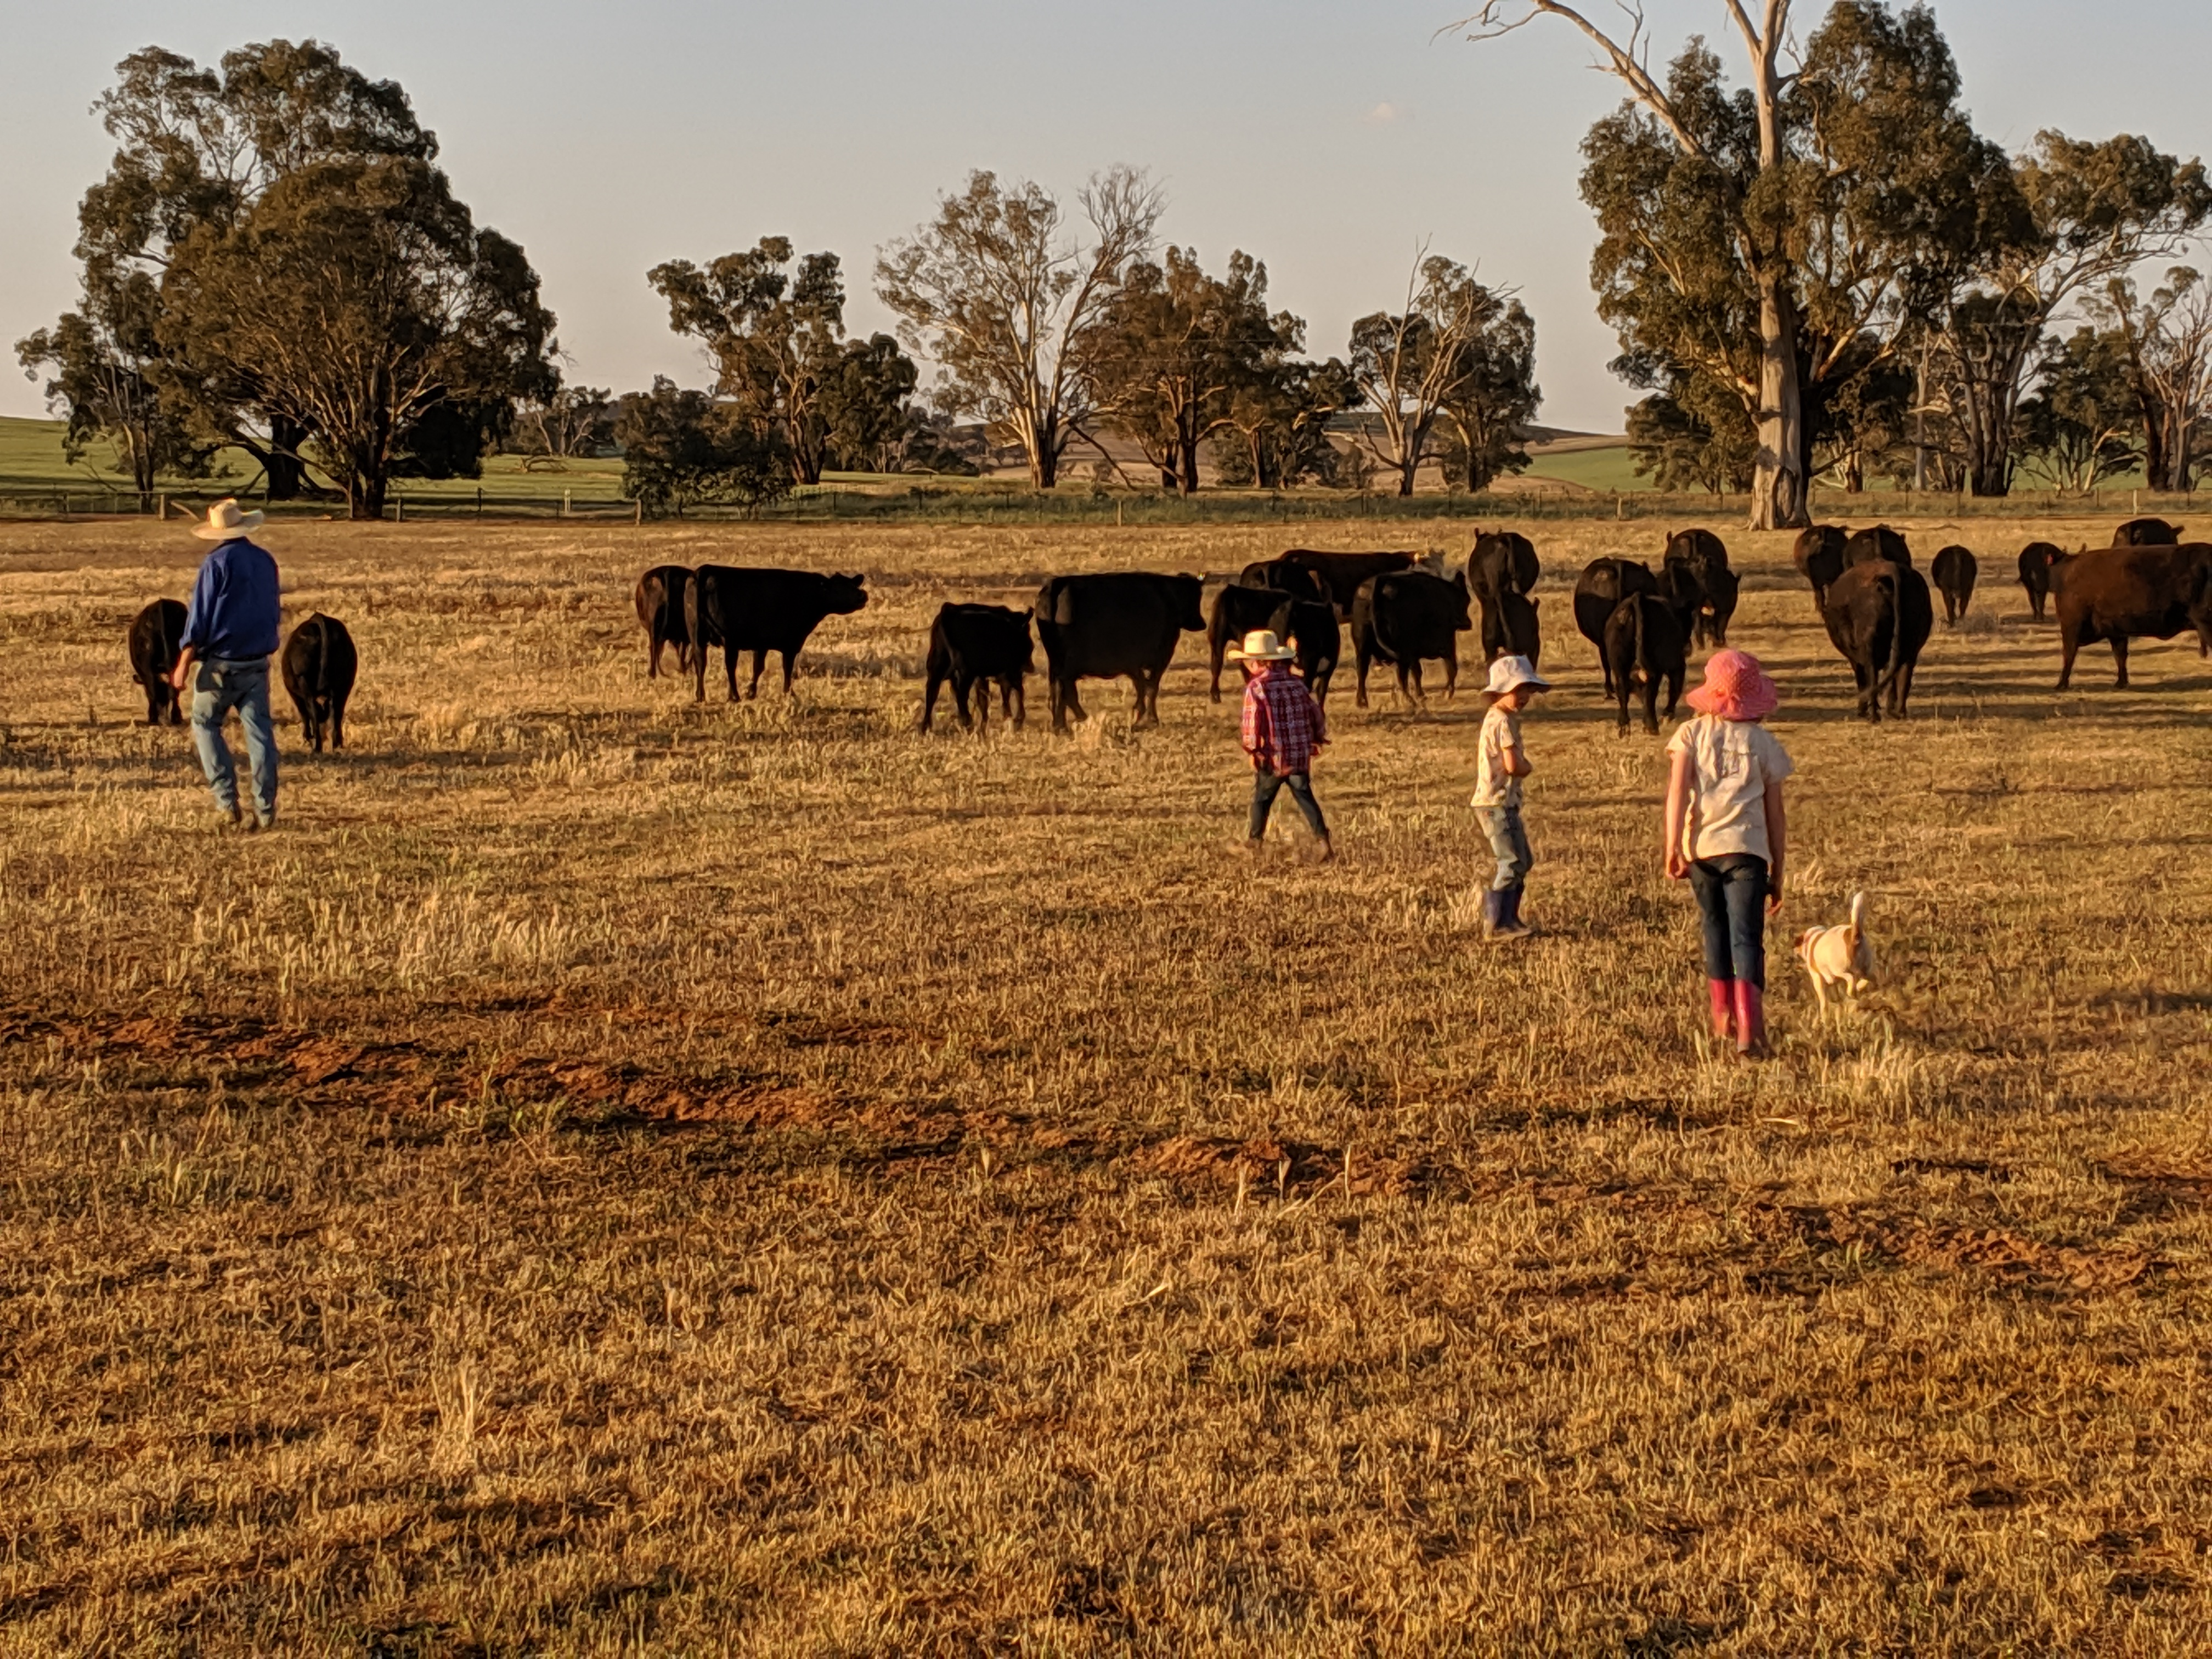 Cows_and_Kids (1)